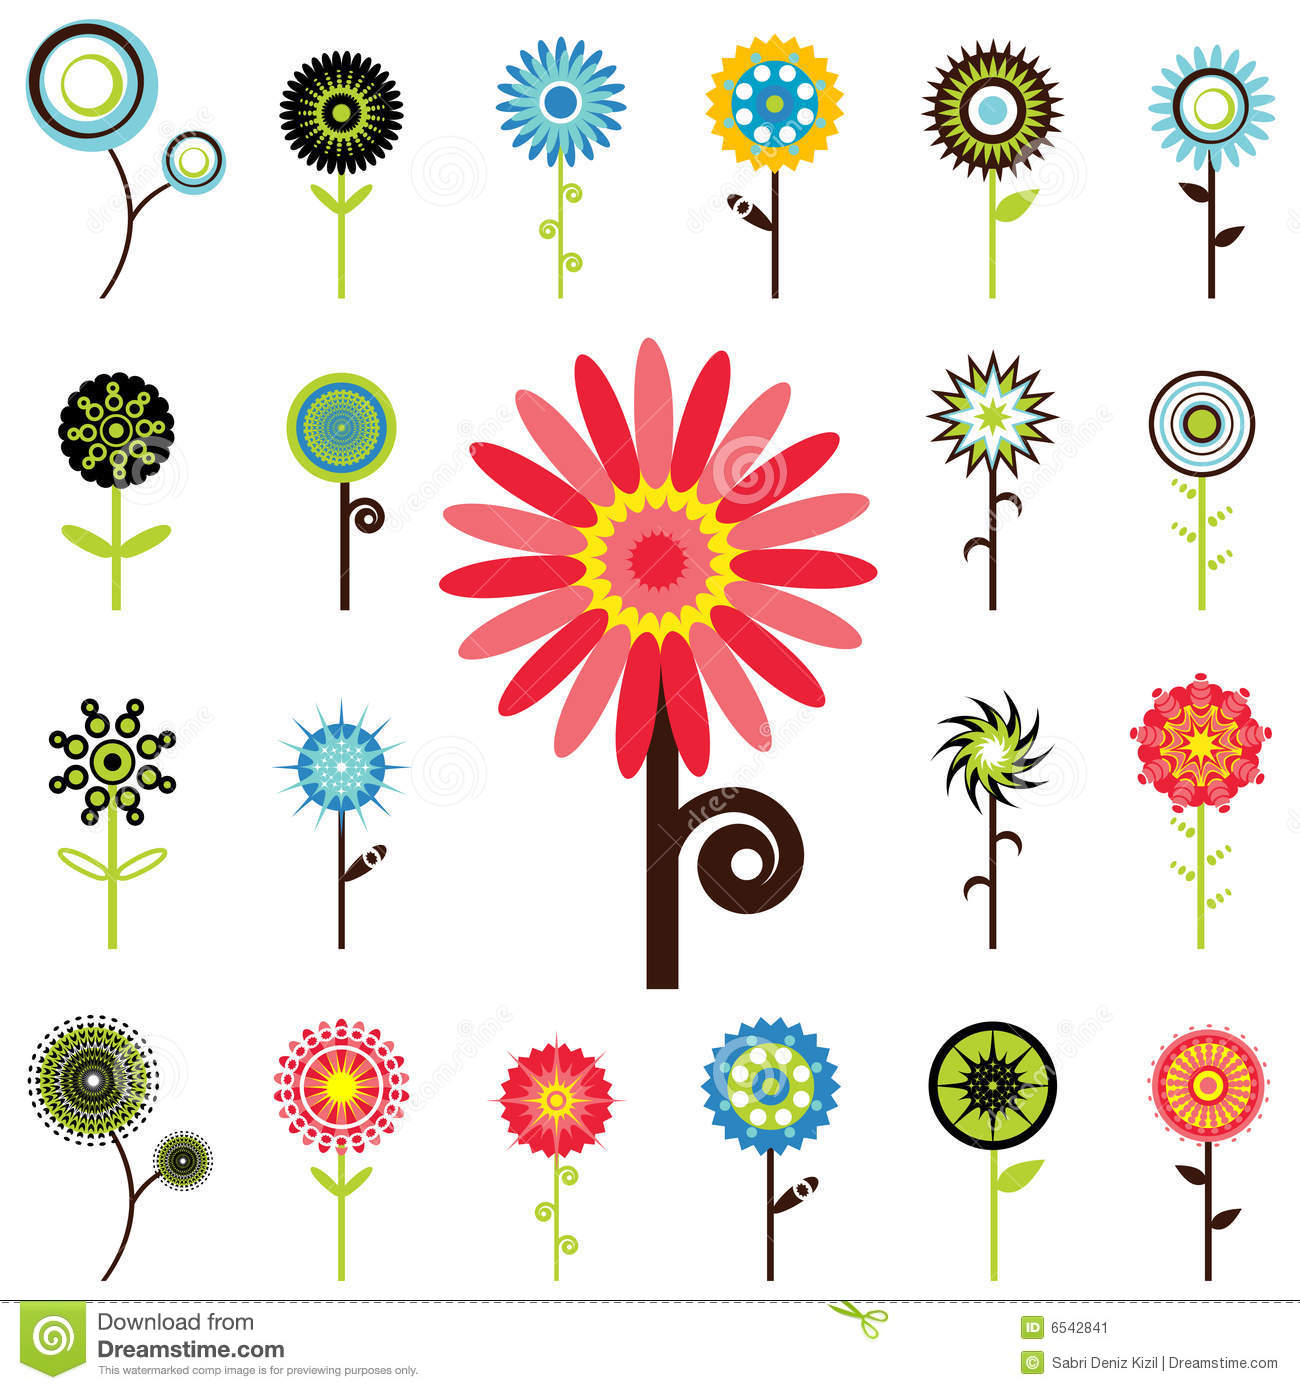 Graphics flower graphic royalty free stock Flower graphics - ClipartFox graphic royalty free stock